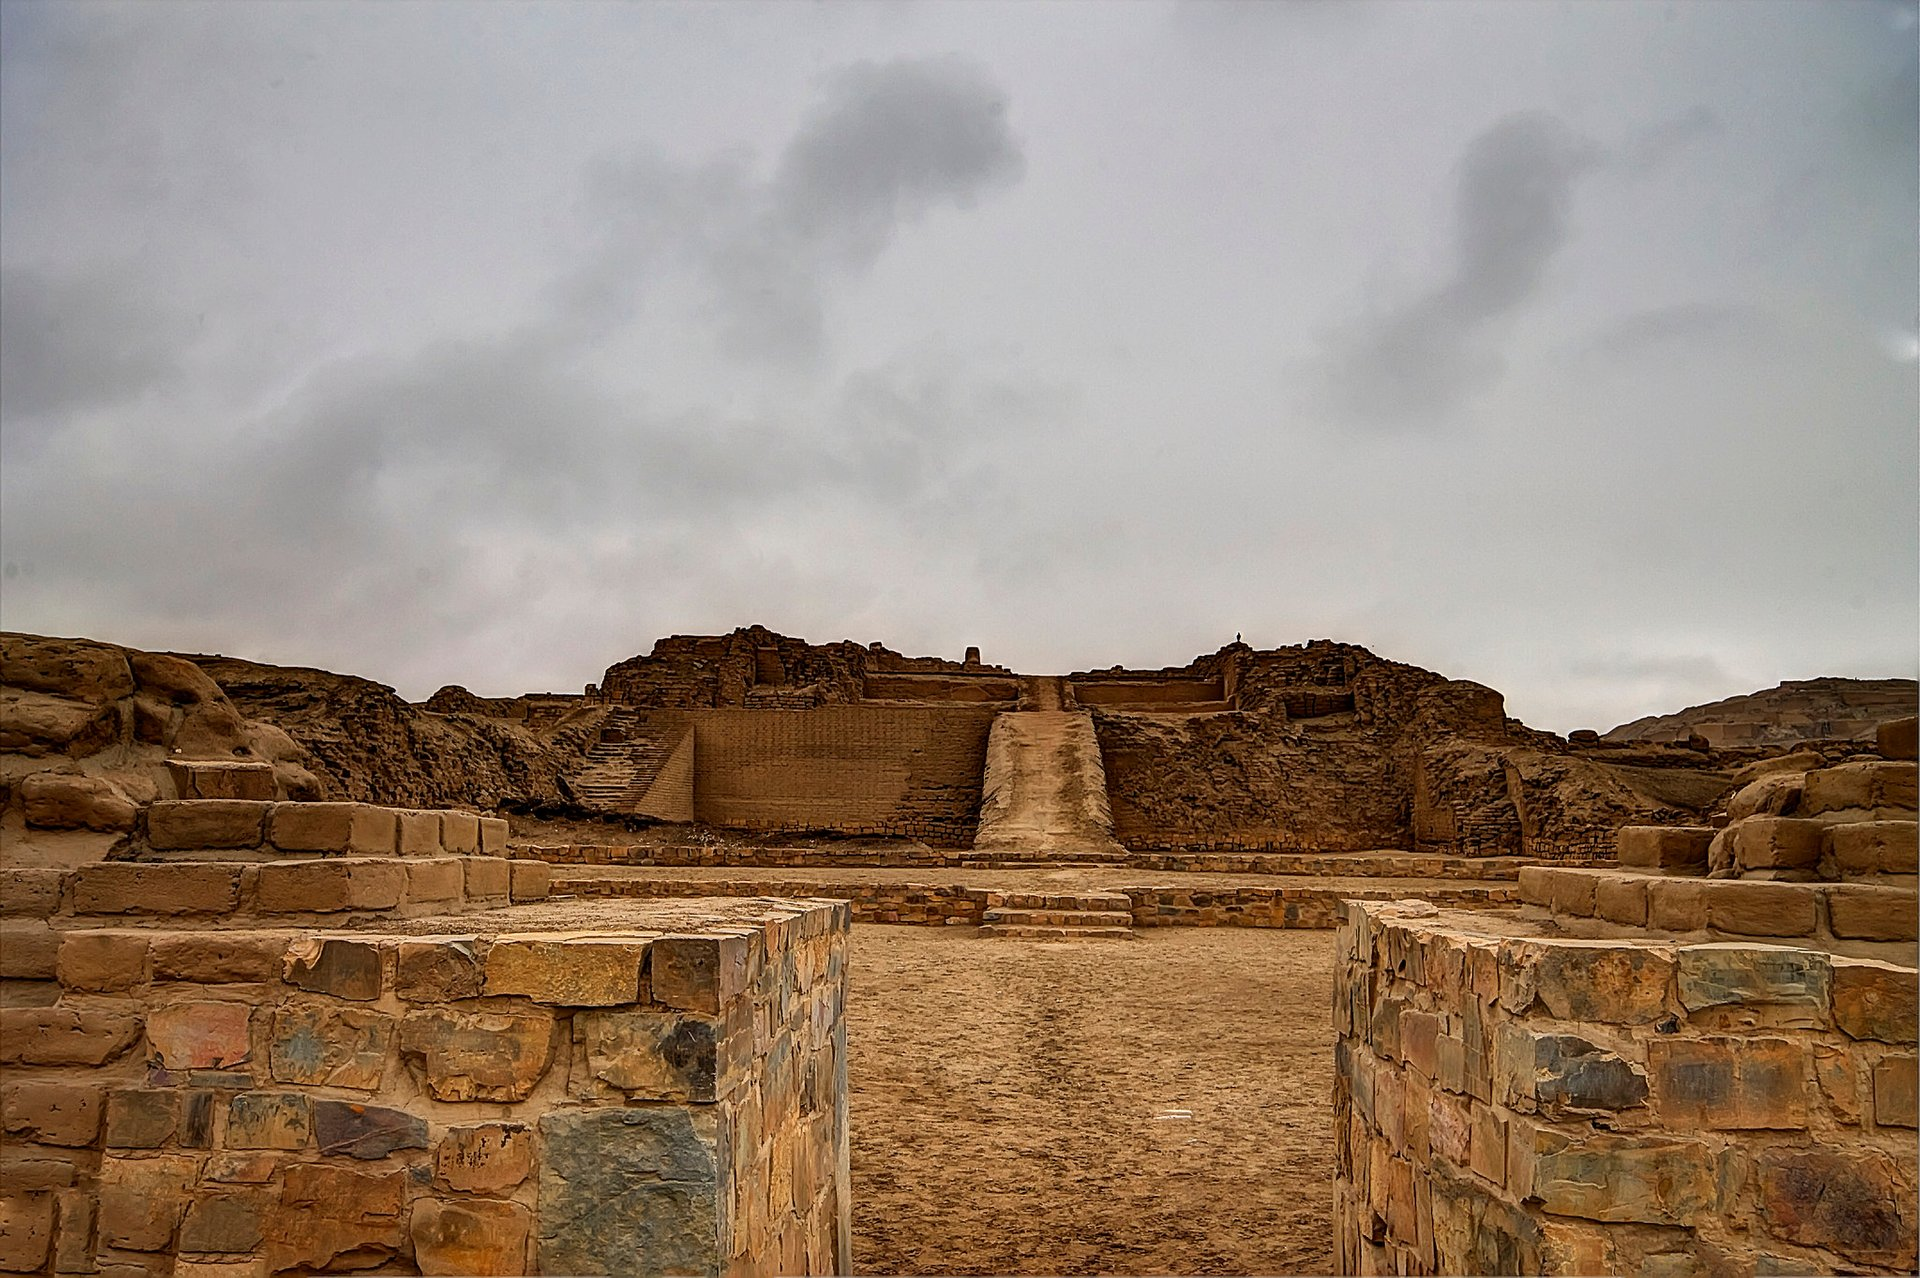 Pachacamac in Peru 2020 - Best Time